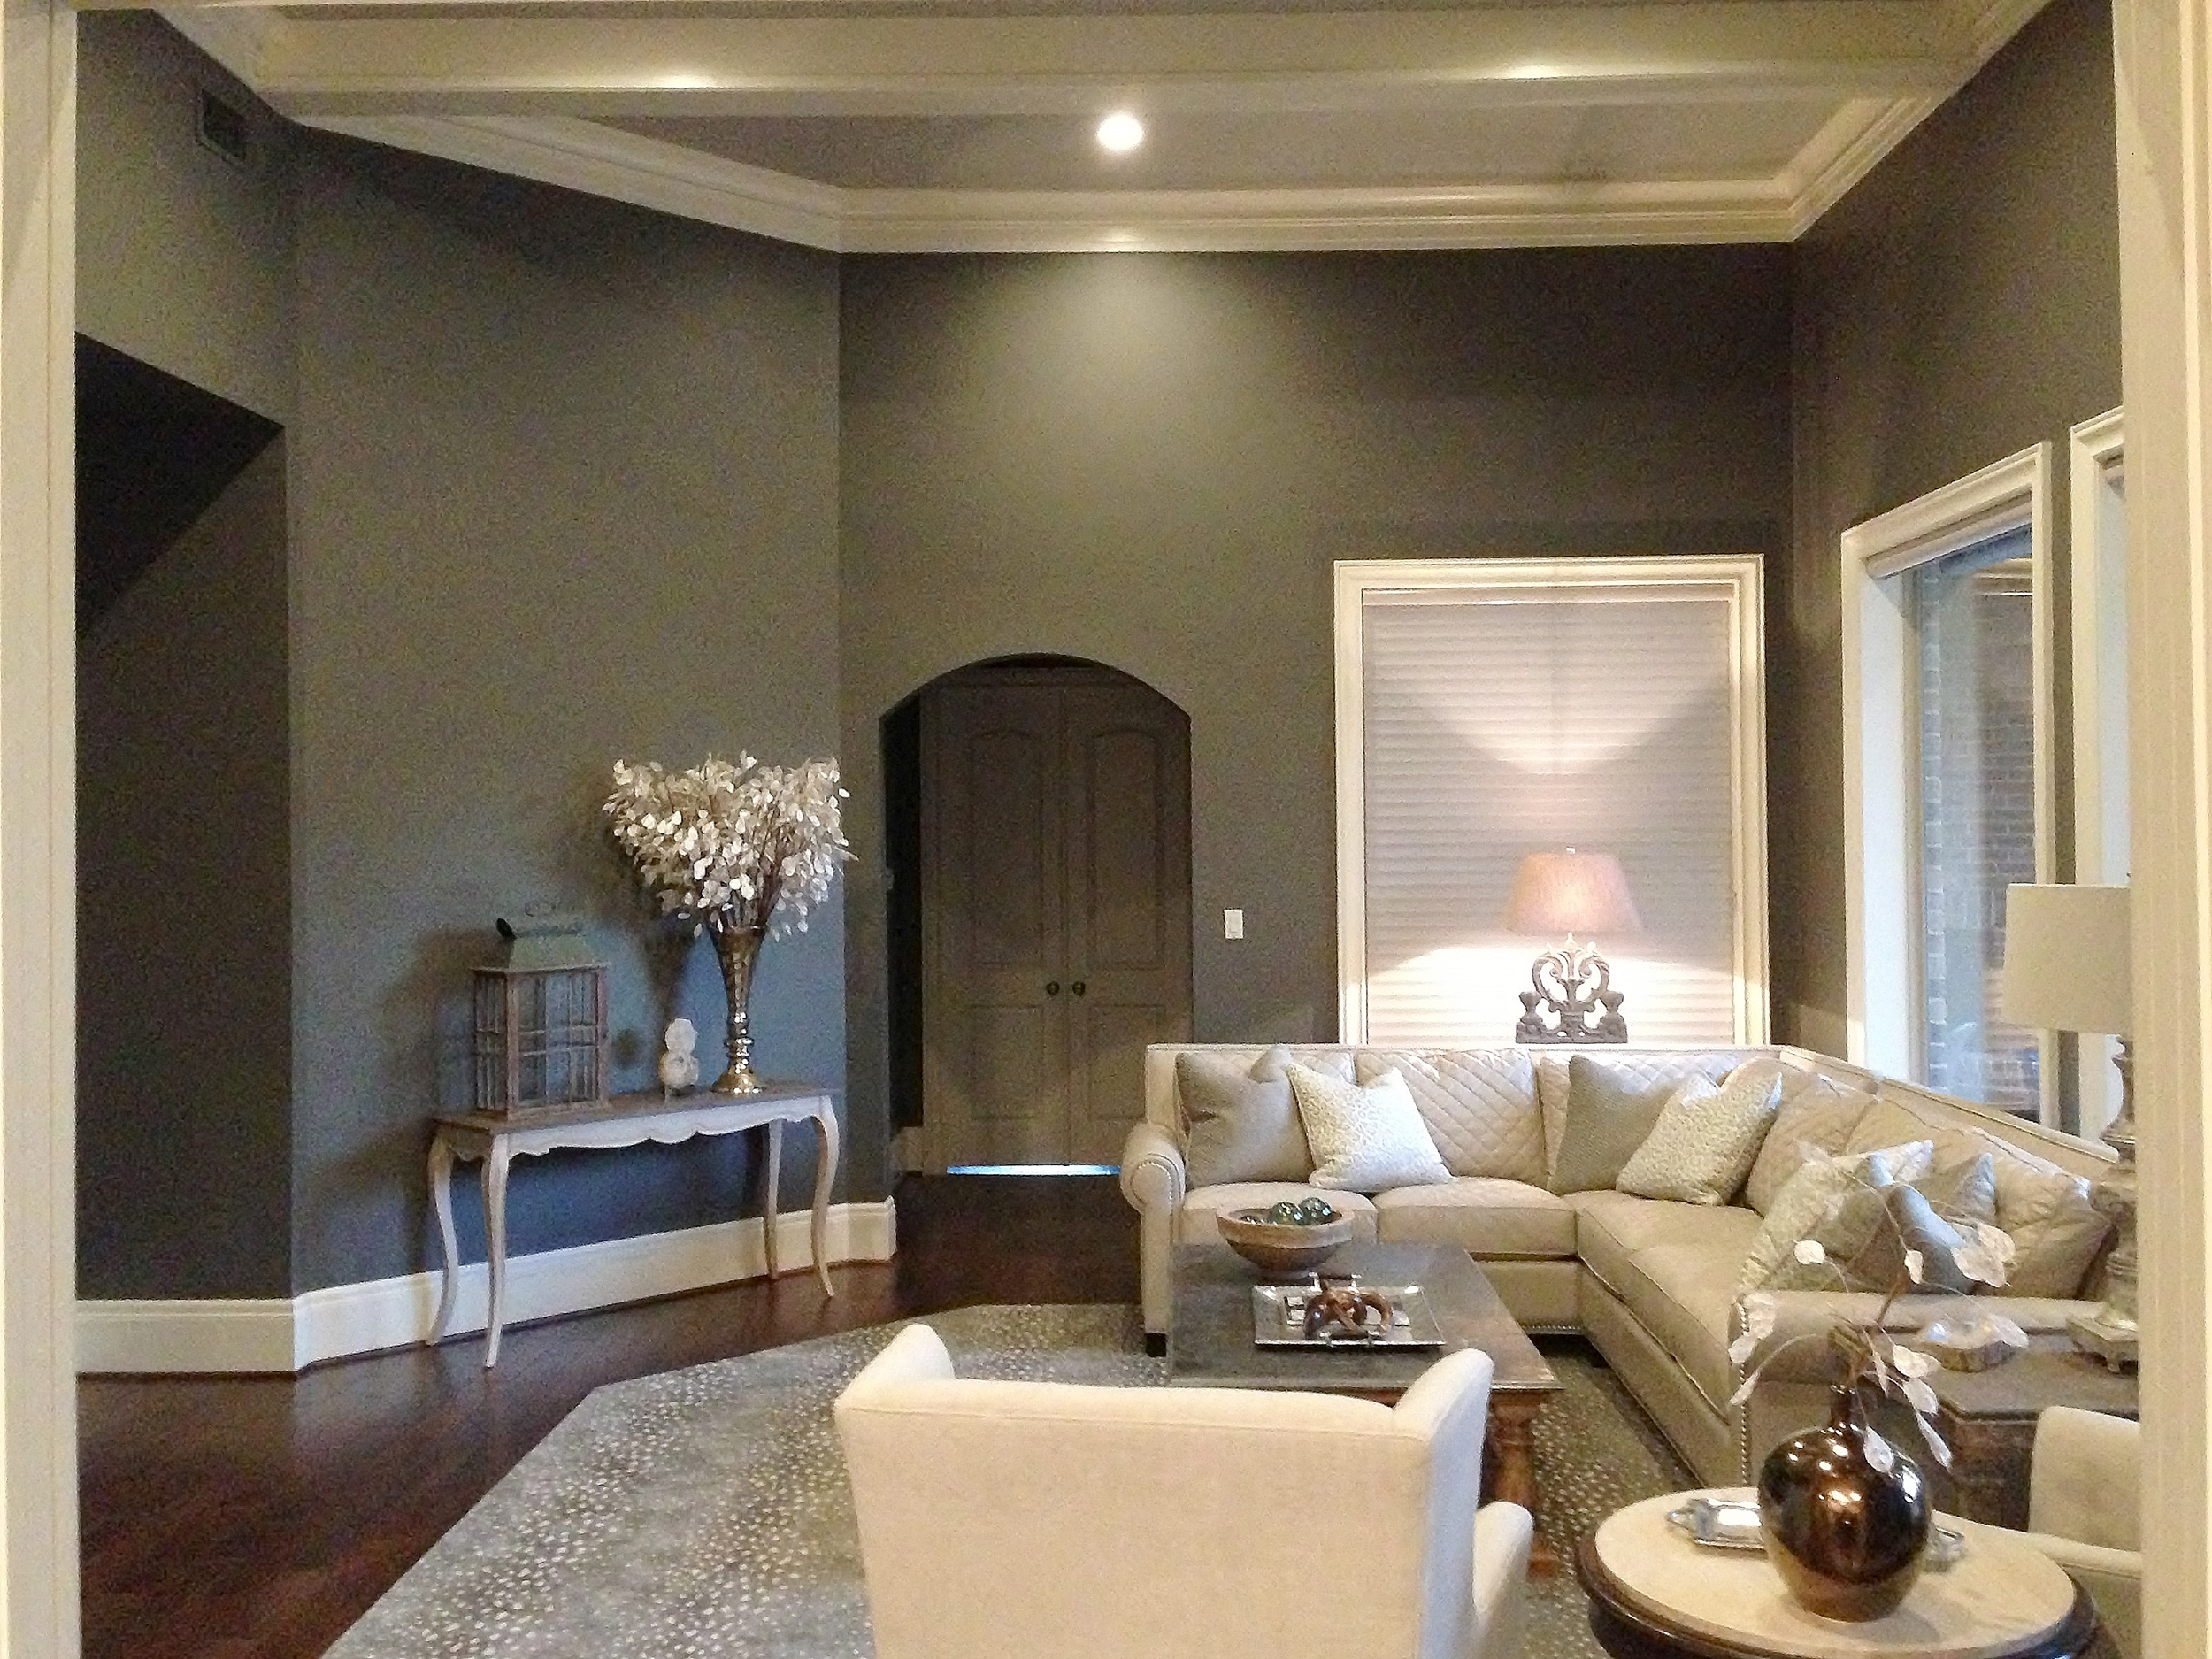 excellent classy living room design | Can A Classy Living Room Be Designed Quickly? Watch Me ...